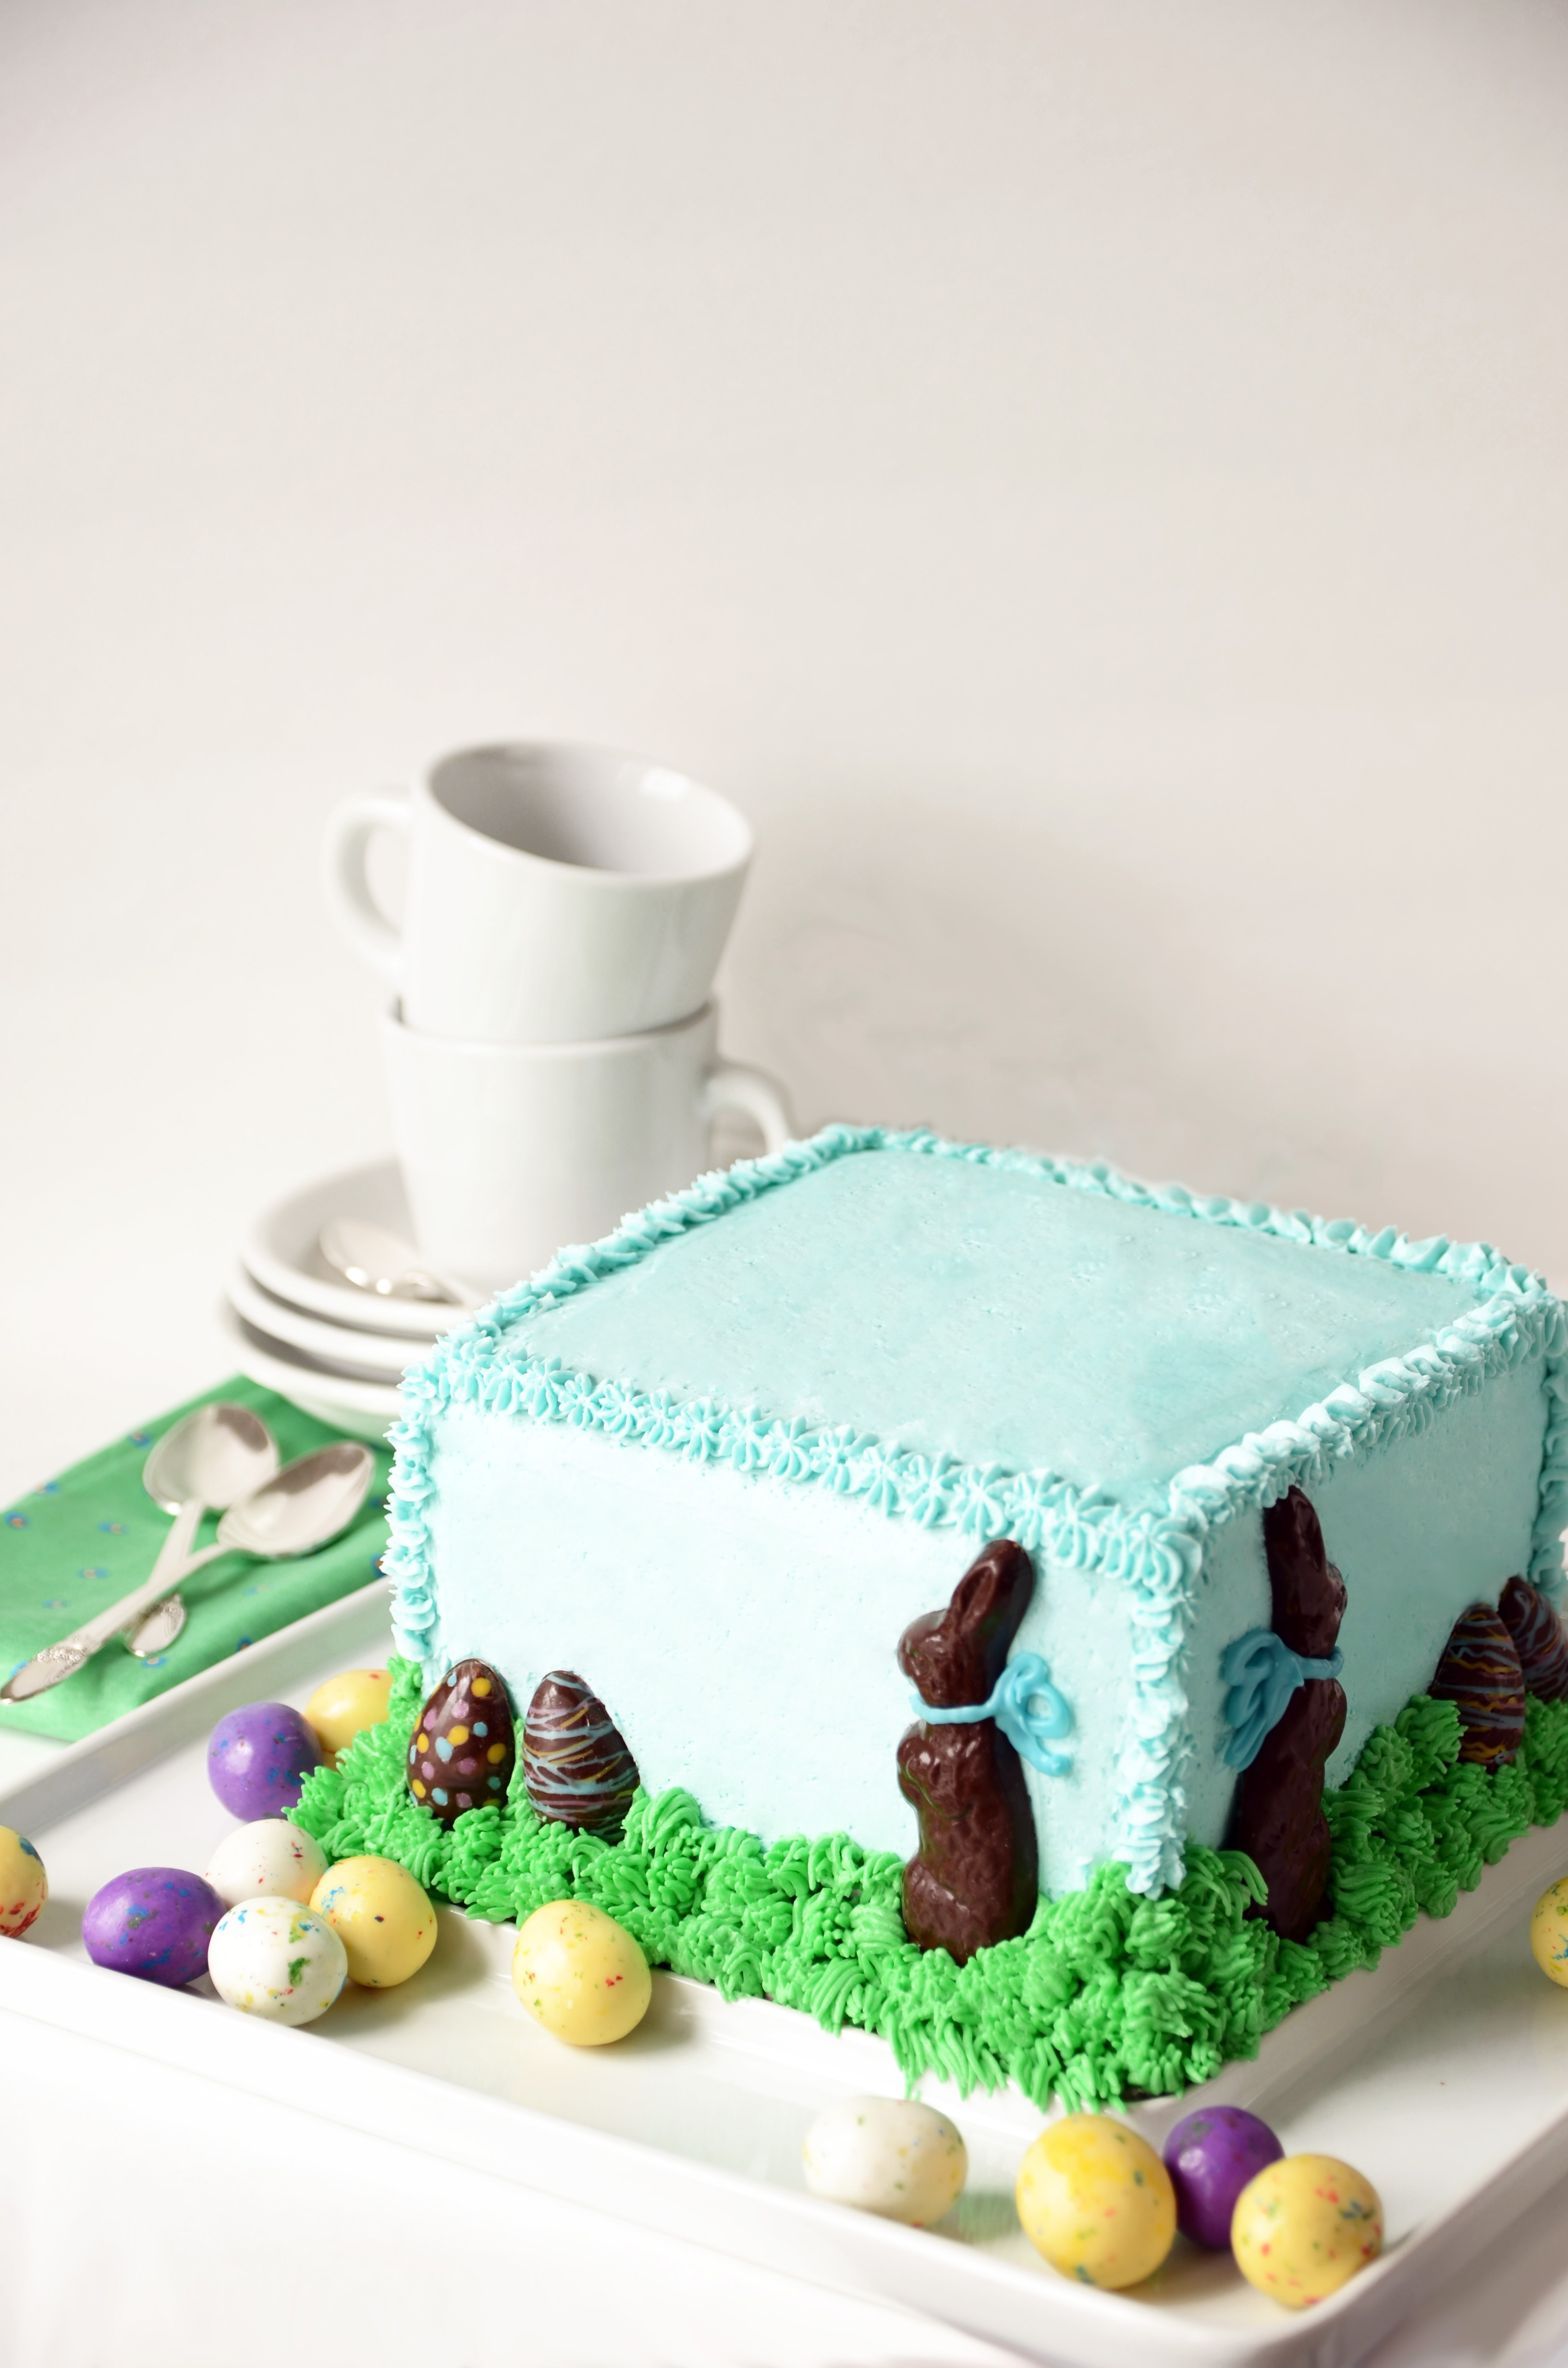 Chocolate Bunny in Grass Cake Vertical4 - Chocolate Easter Bunny Cake